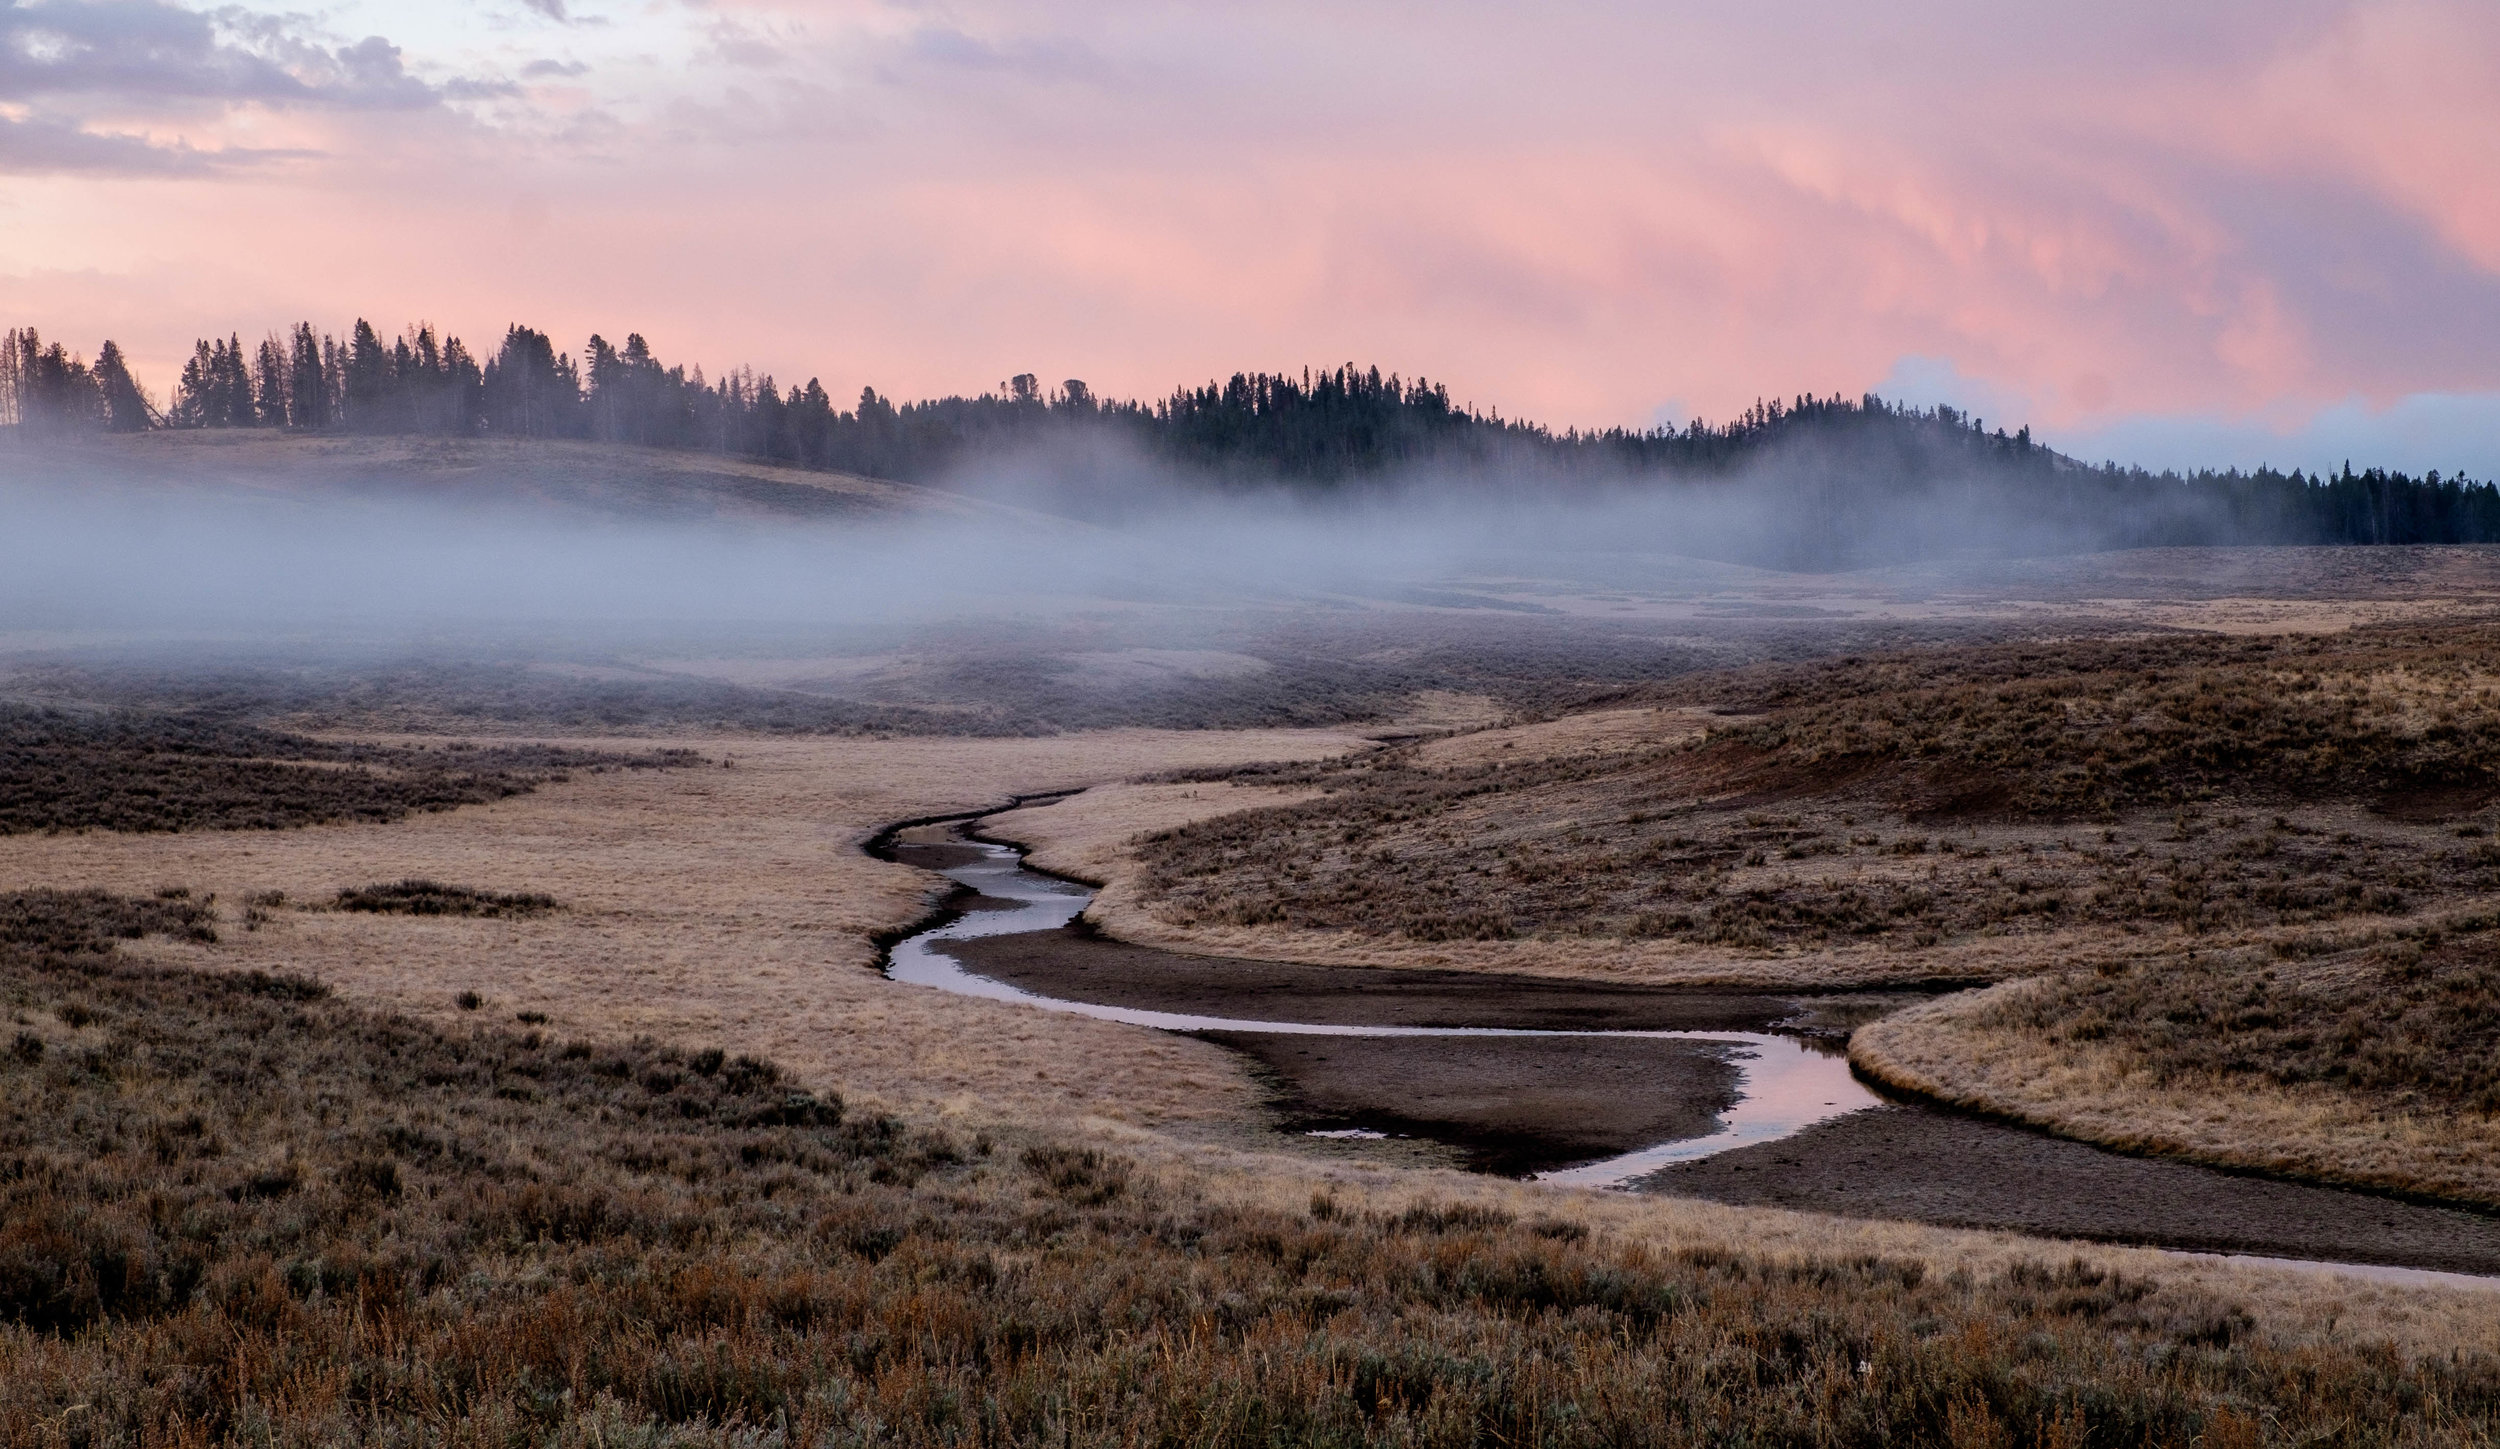 Water runs throughout Yellowstone providing vital hydration to wildlife ecosystems.